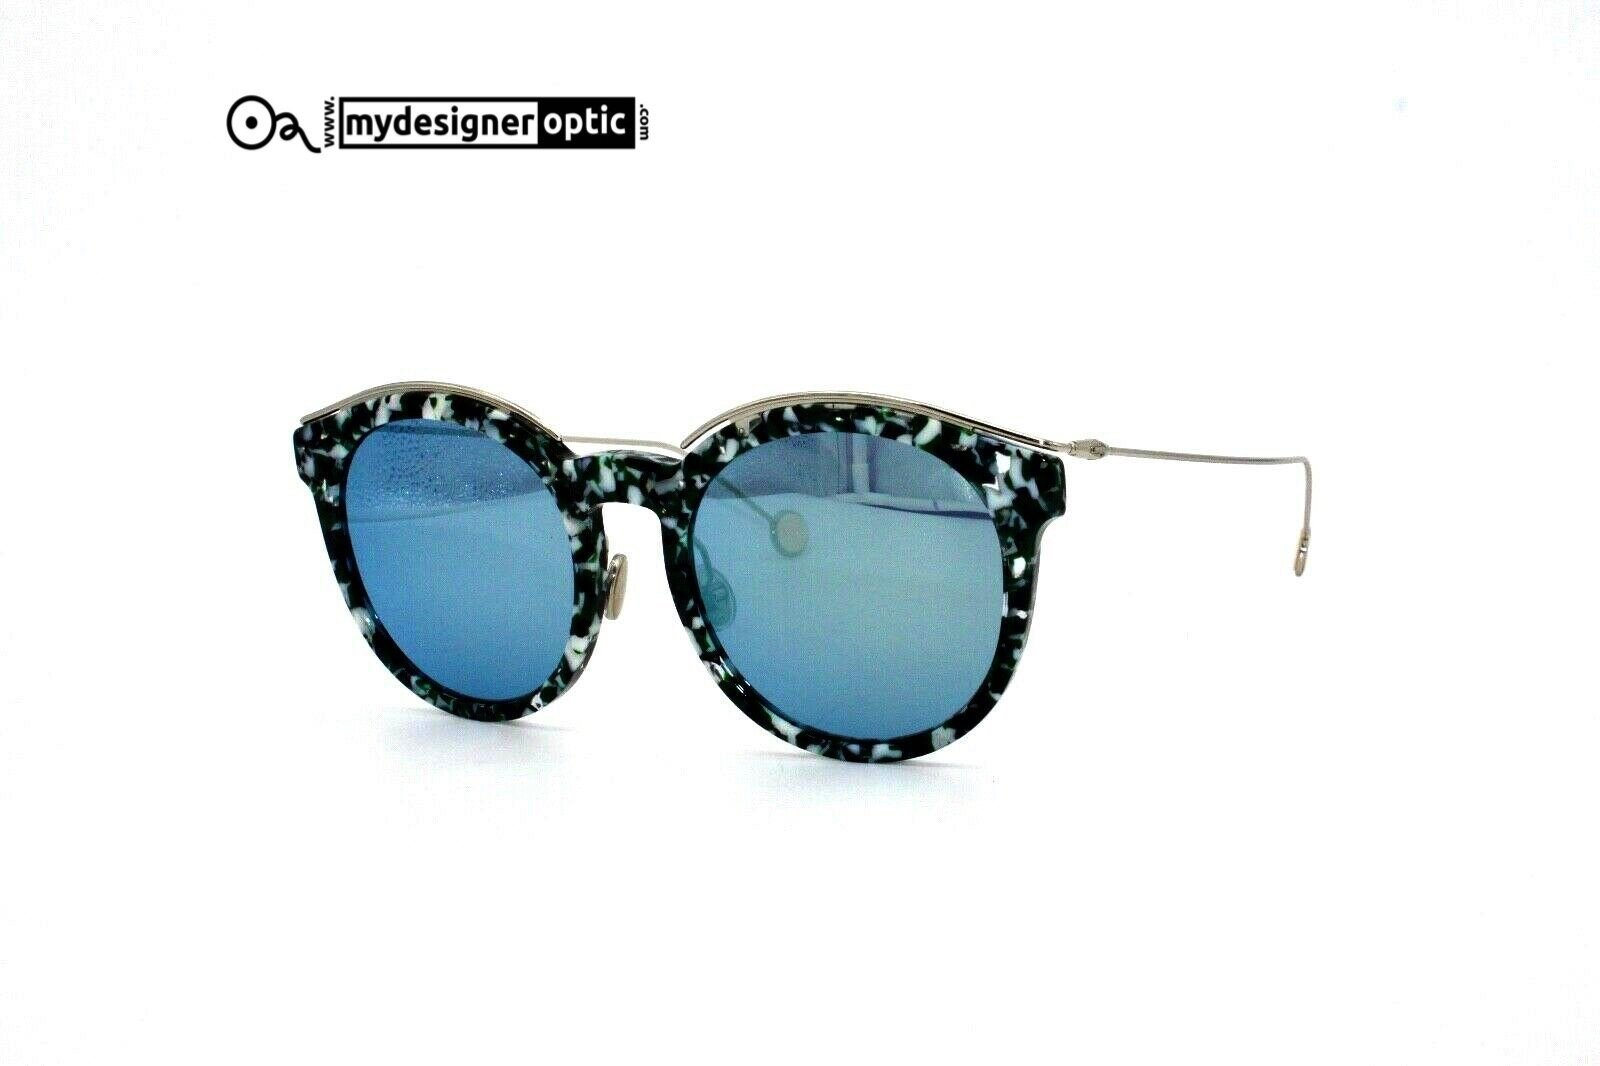 Christian Dior Sunglasses Blossom YE63J 52-20-145 HM 3 Made in Italy - Mydesigneroptic